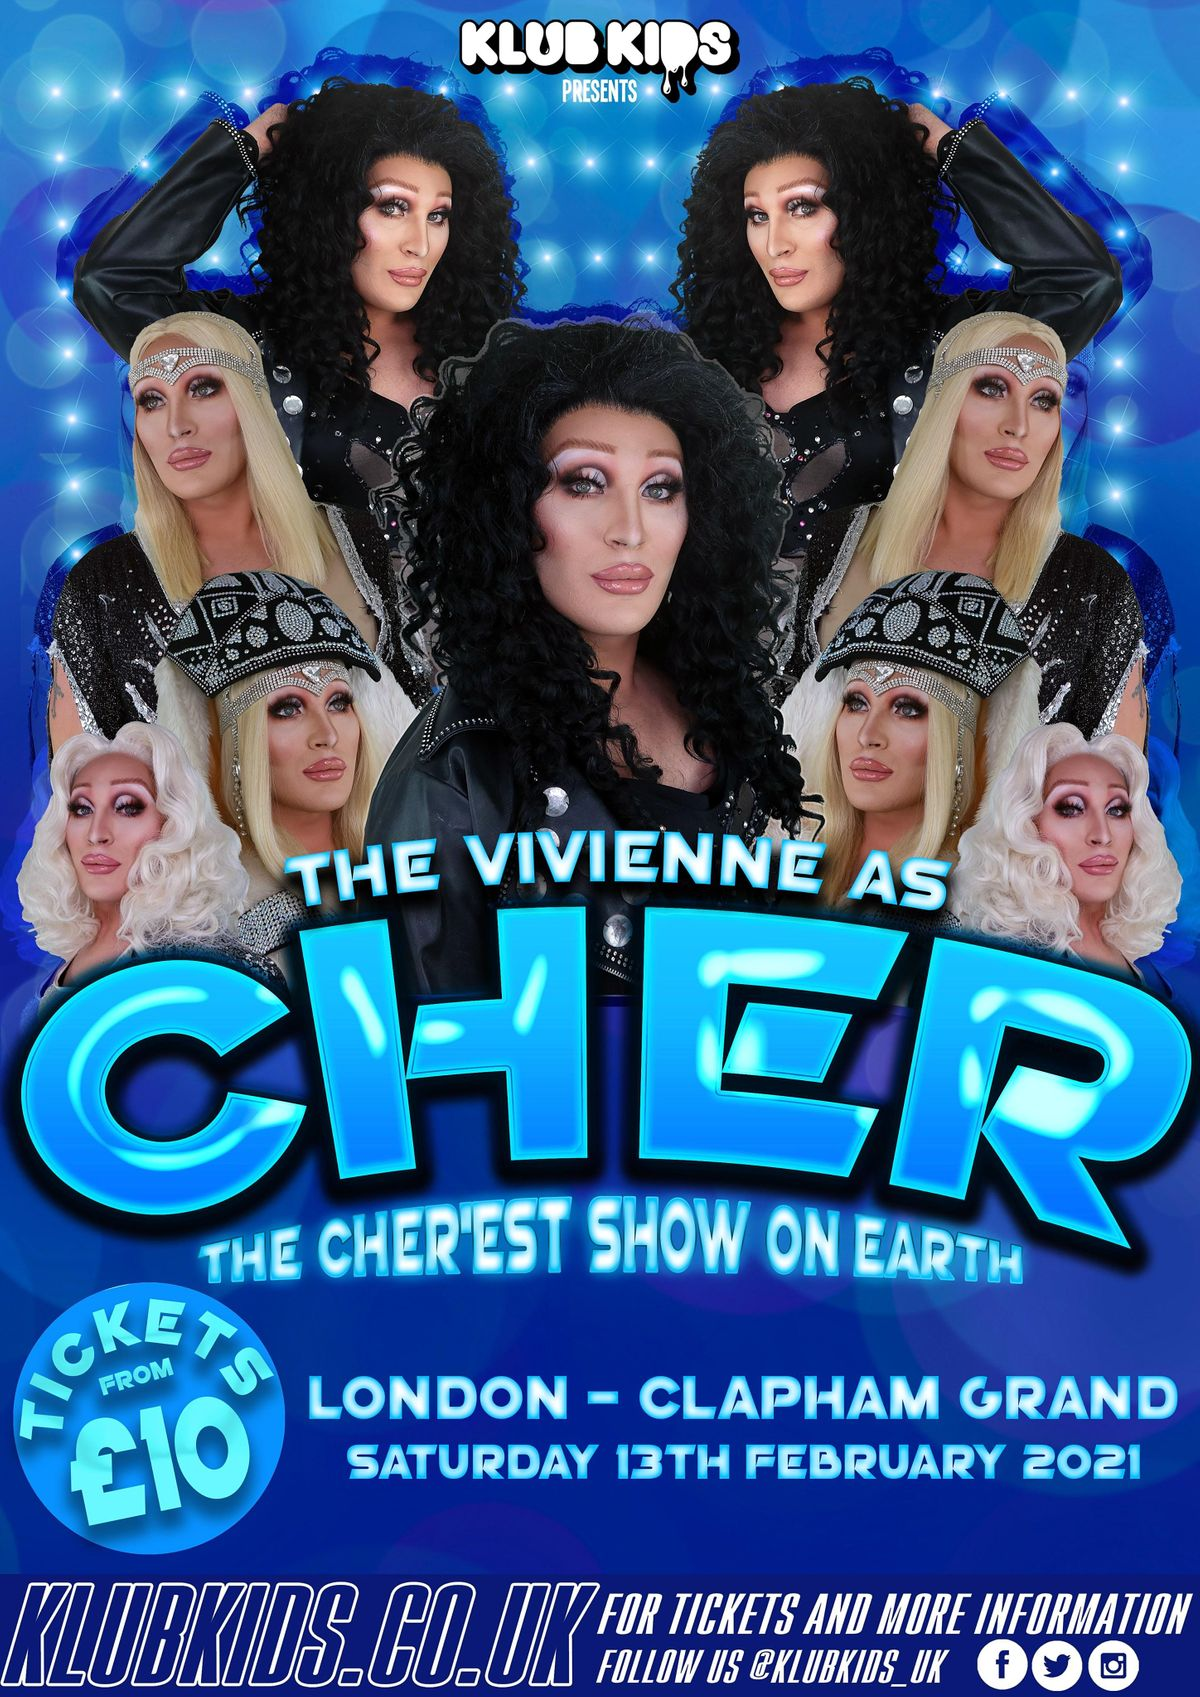 Klub Kids London Presents: THE VIVIENNE as Cher (+14), 1 January | Event in London | AllEvents.in